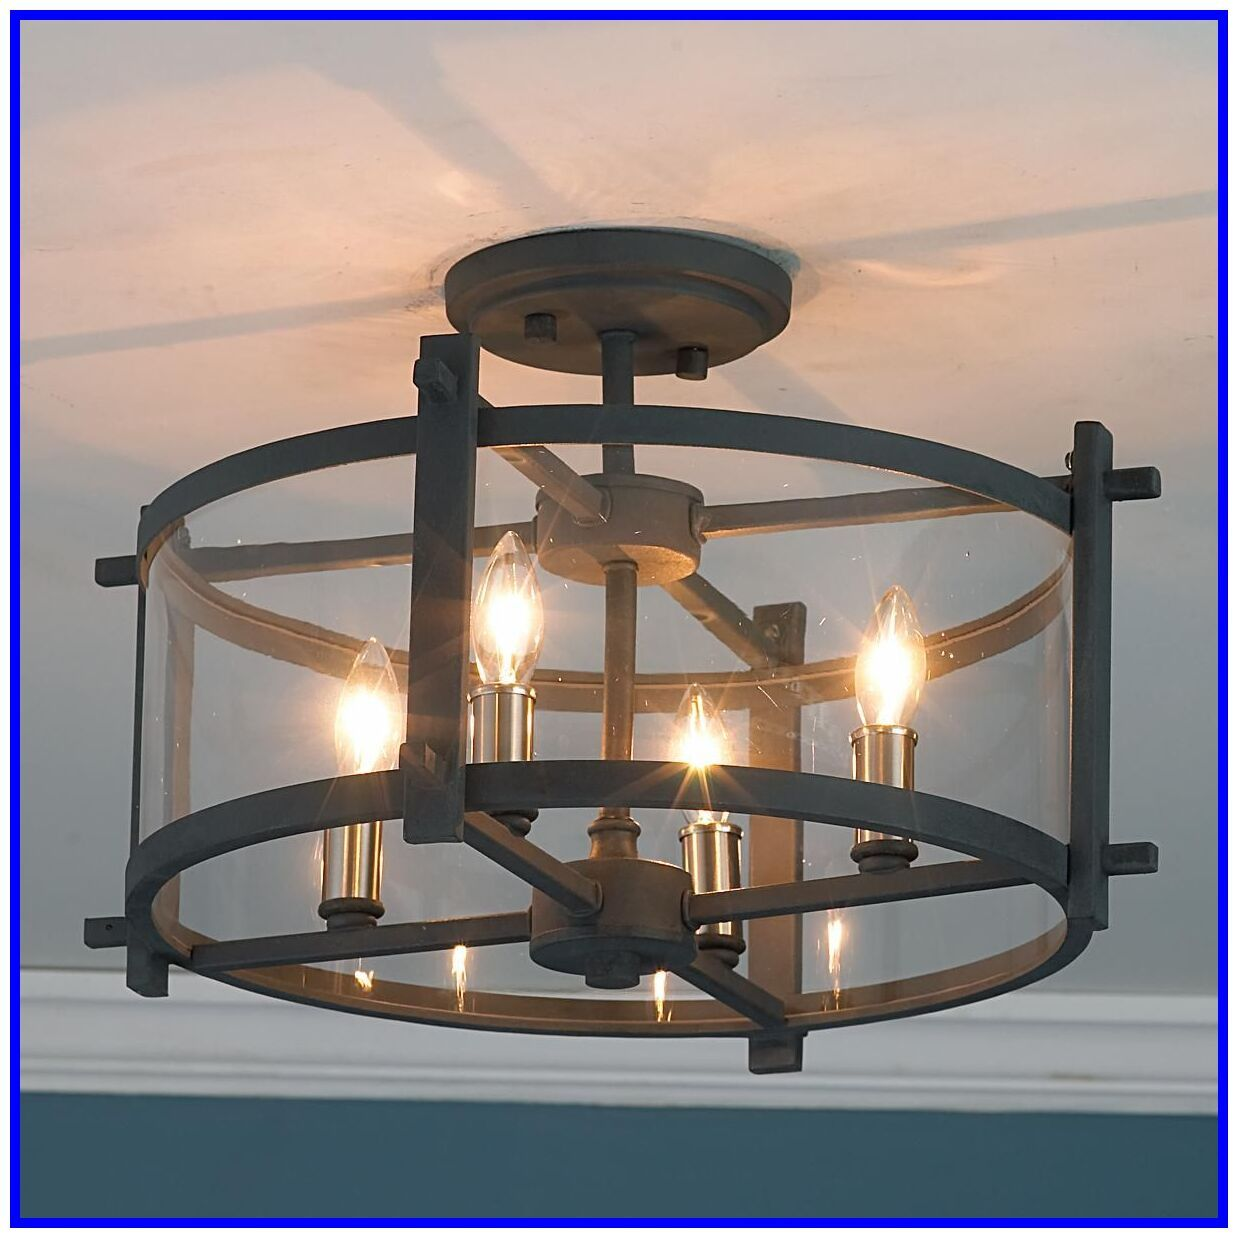 71 Reference Of Kitchen Ceiling Light Fixtures Home Depot Modern Ceiling Light Fixtures Entry Way Lighting Fixtures Ceiling Light Fixtures Living Room